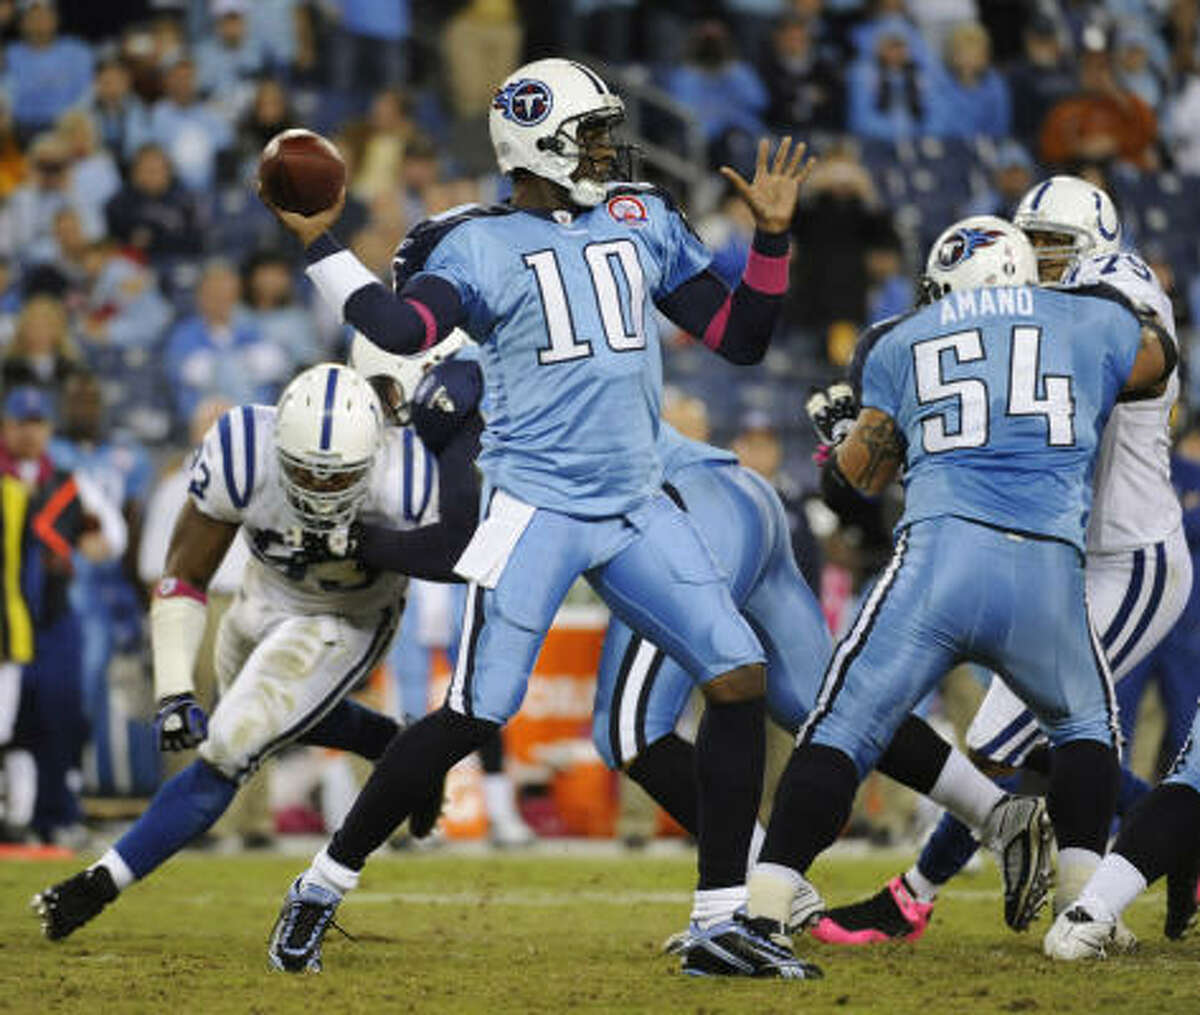 Vince Young, who has been used sparingly this year, has the support of Titans owner Bud Adams.